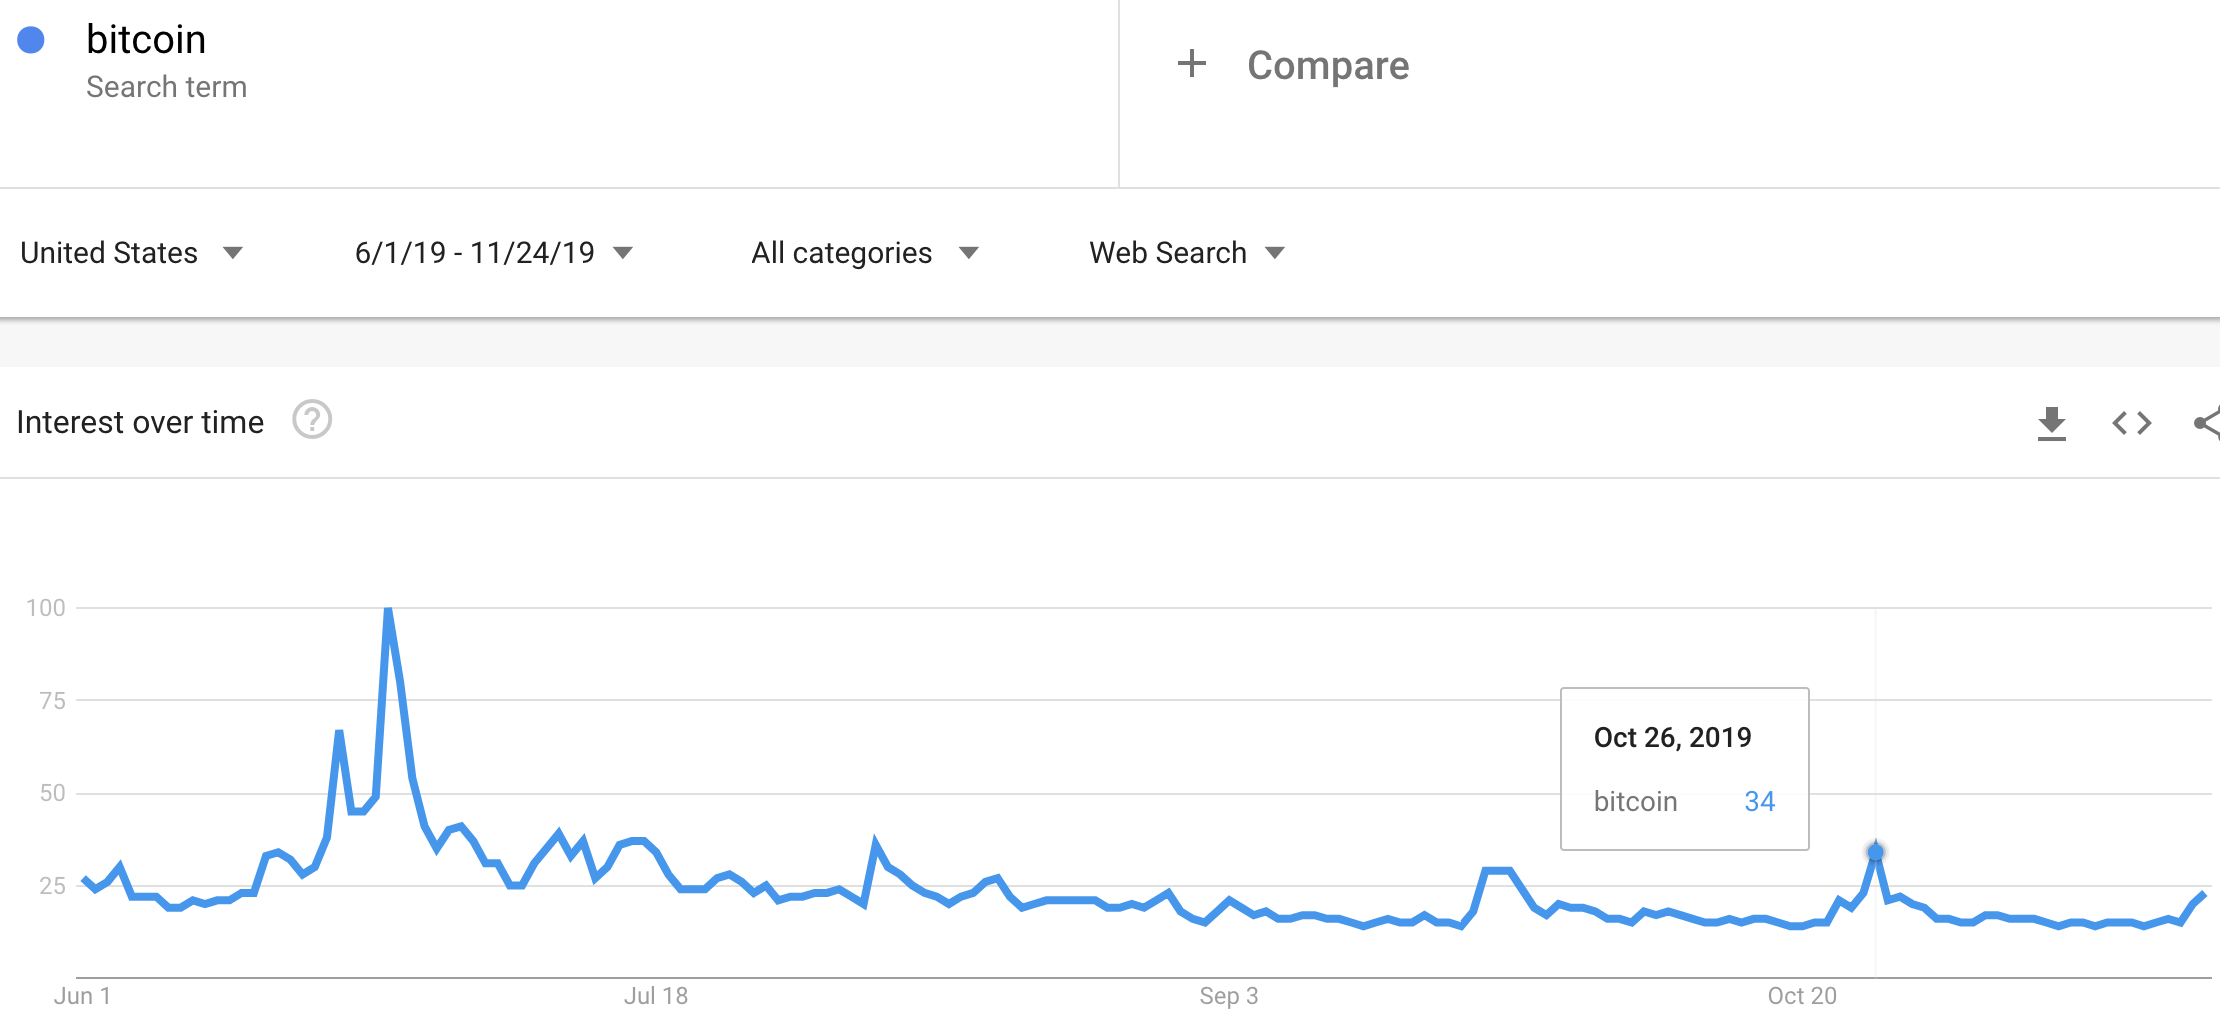 Since June, Google Trends for Bitcoin suggests overall interest in Bitcoin has been lukewarm. Recent spurts of interest have paled in comparison to the June surge which marked the most recent top in Bitcoin.